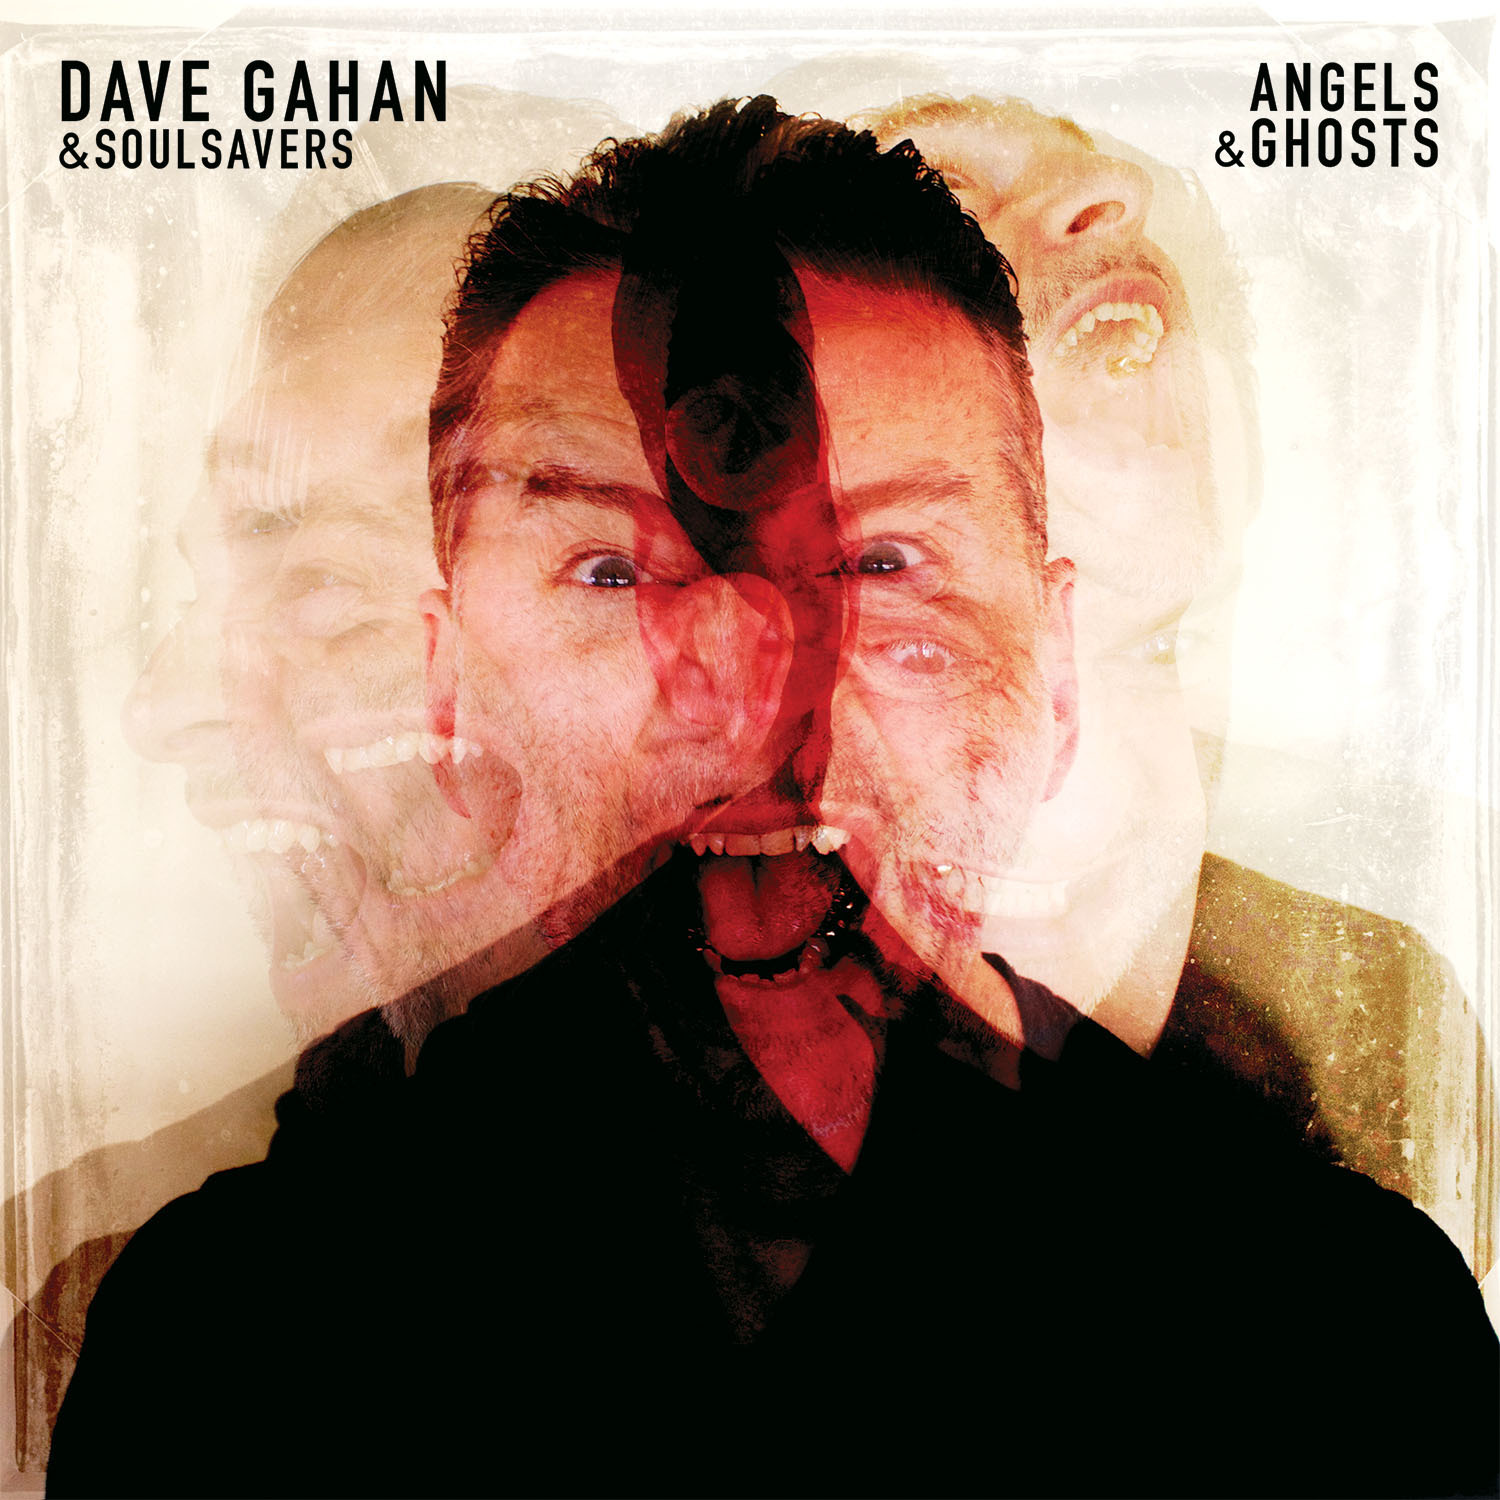 Review: Dave Gahan & Soulsavers, 'Angels & Ghosts'